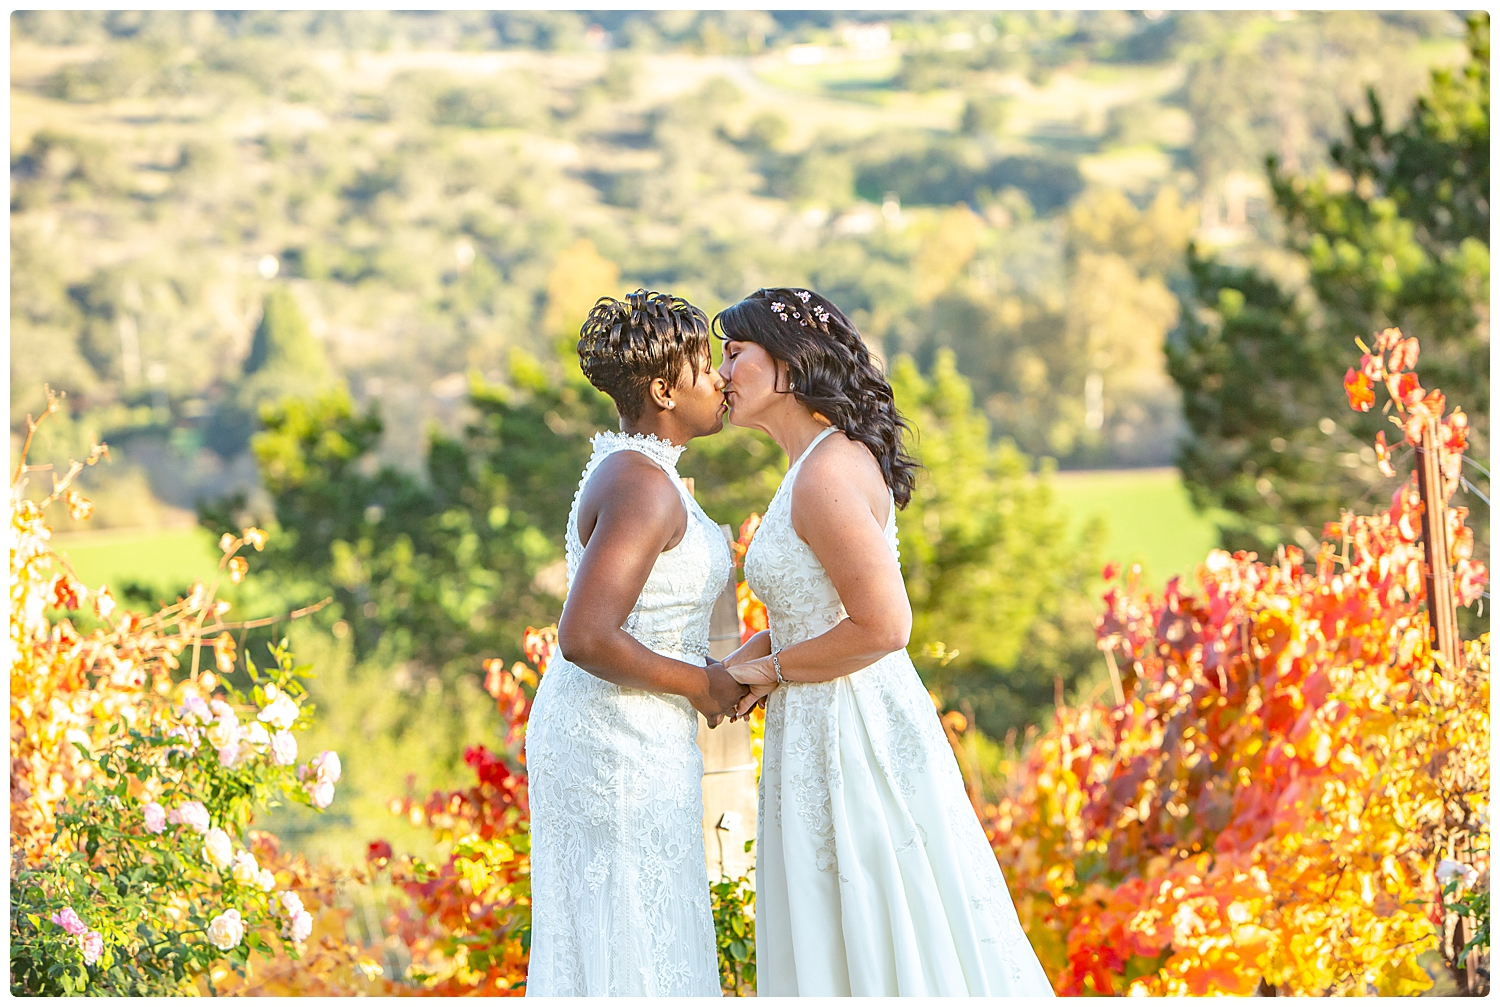 New Years Eve intimate wedding_Renoda Campbell Photography_LGBT wedding_0078.jpg